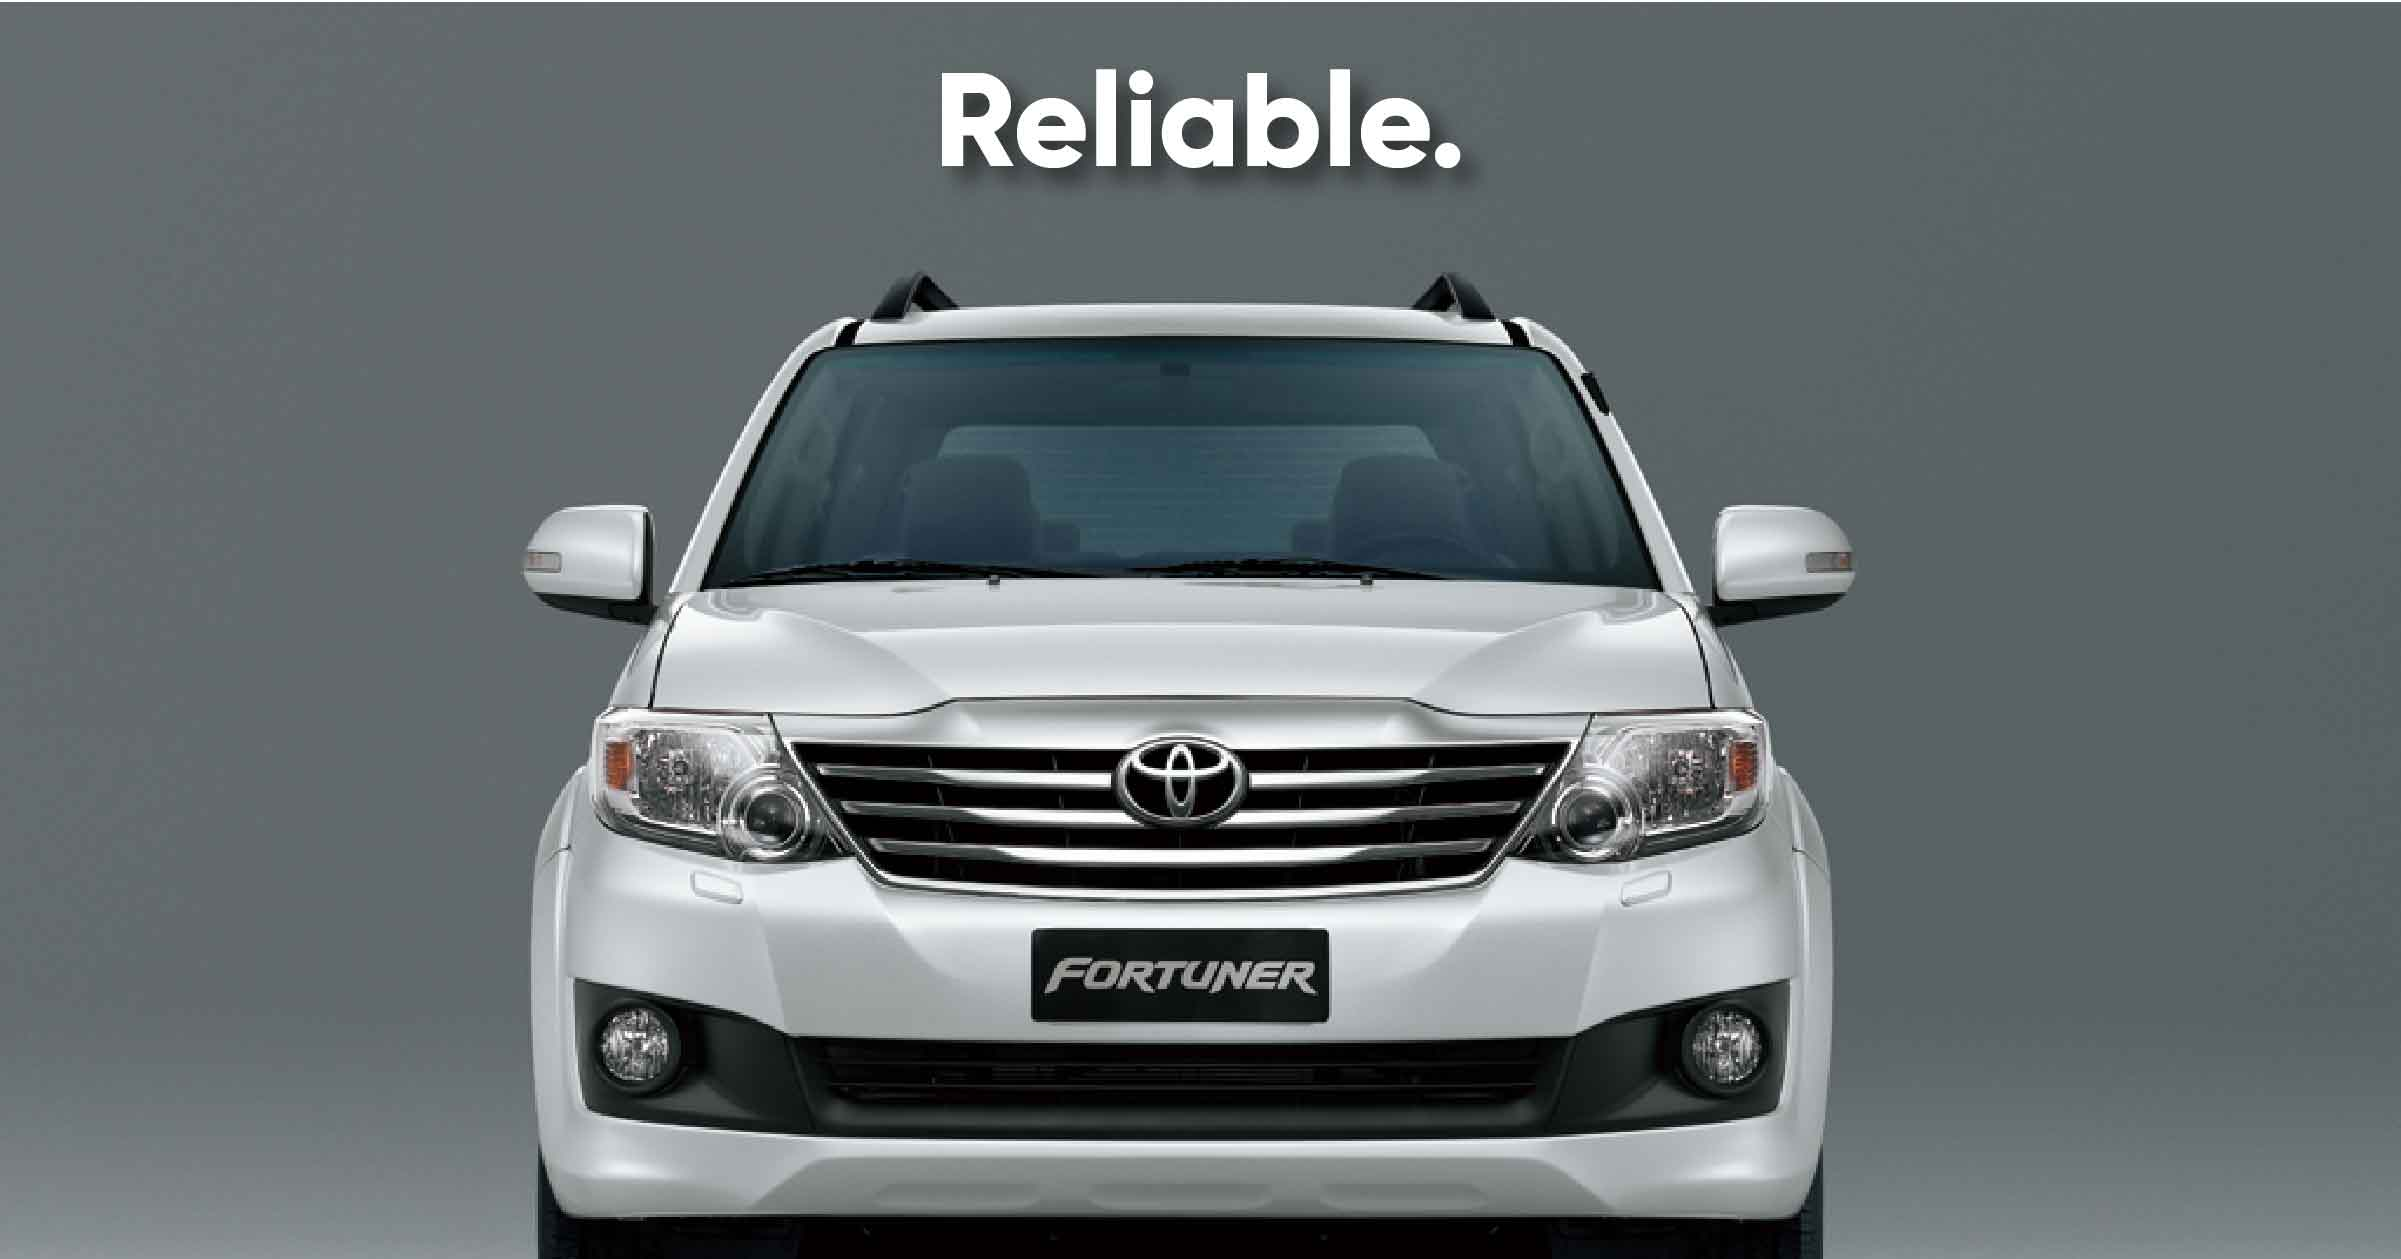 10 Reasons Why Indians Are Crazy About Toyota Cars